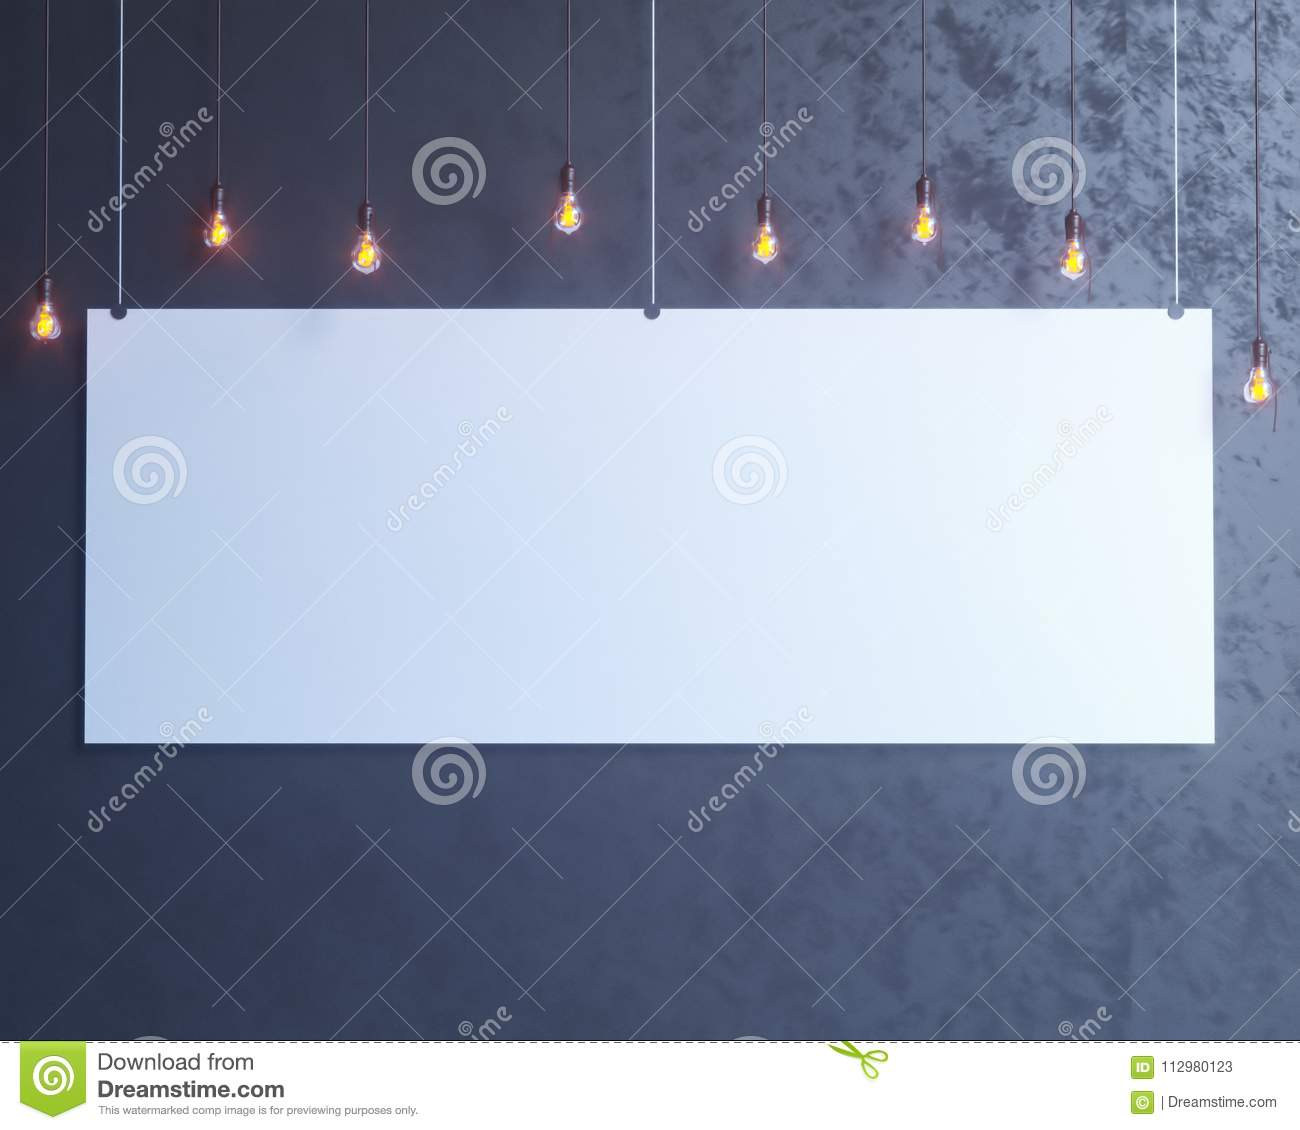 Poster Mock-up, Mock-up Template On Isolated White Background, Ready For Your Design, 3D Illustration.